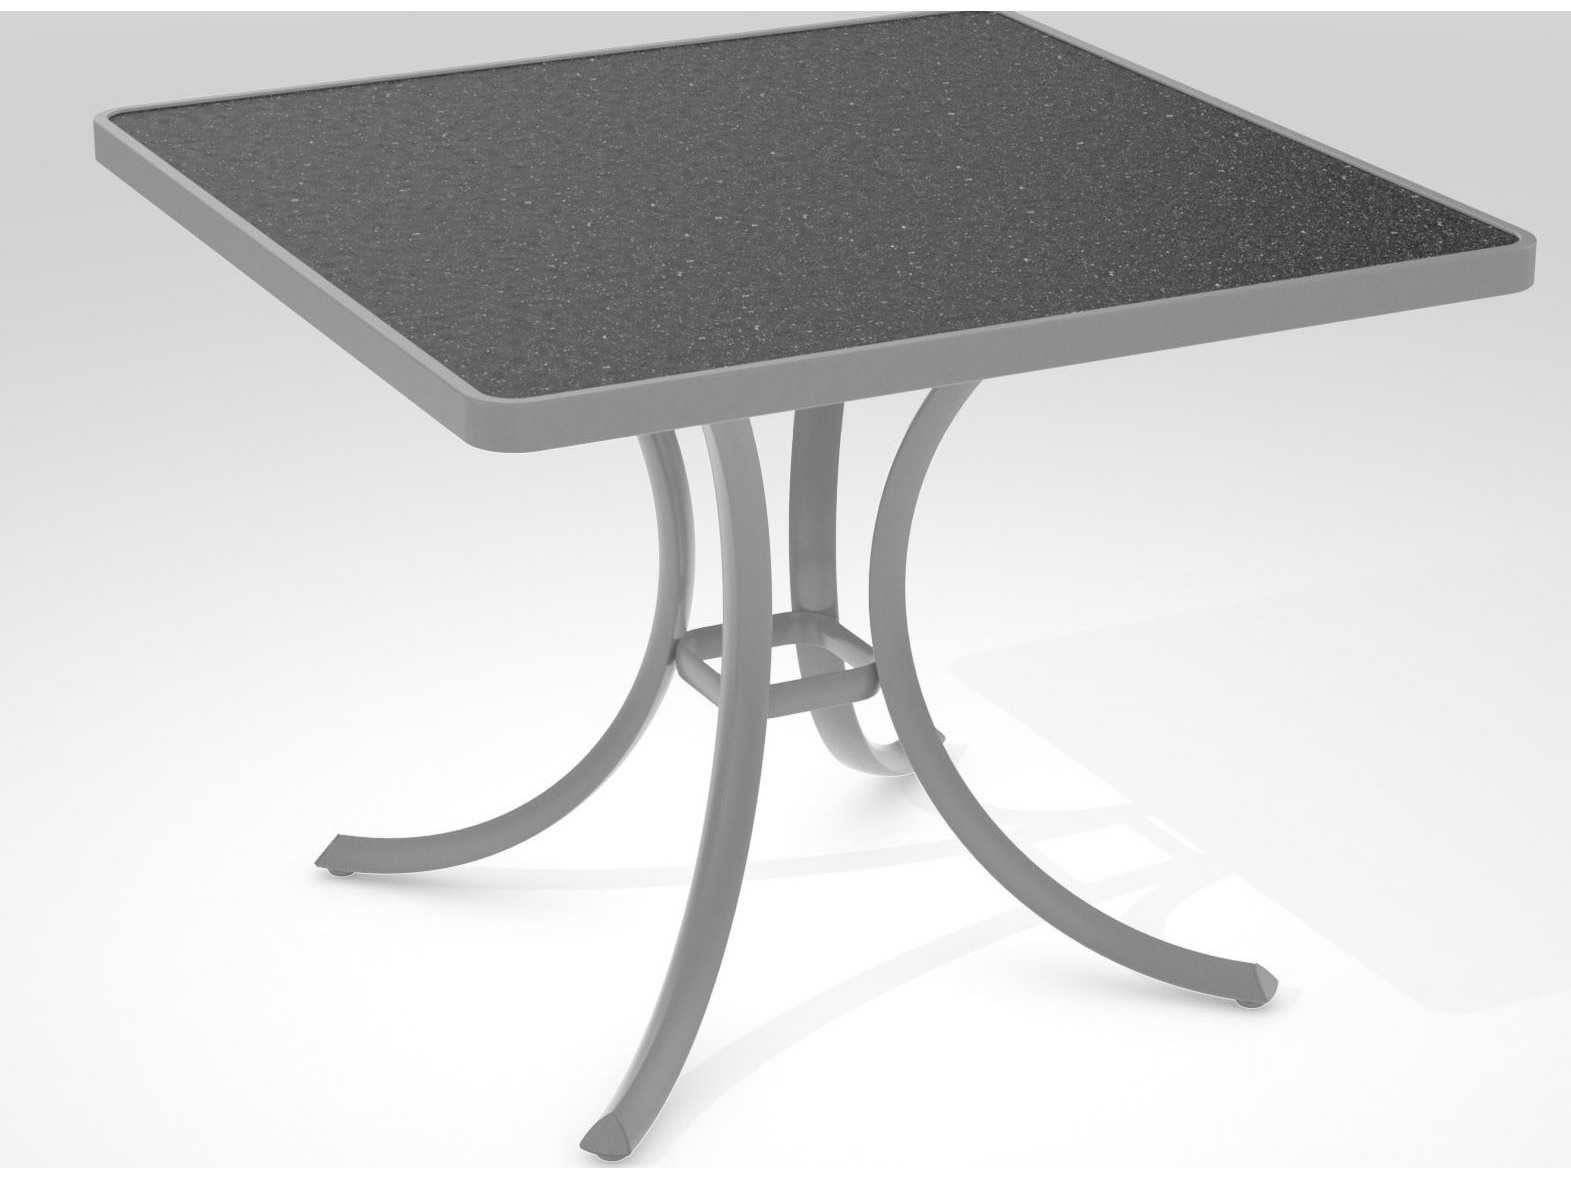 Tropitone Hpl Raduno Aluminum 36 Square Dining Table 1876h